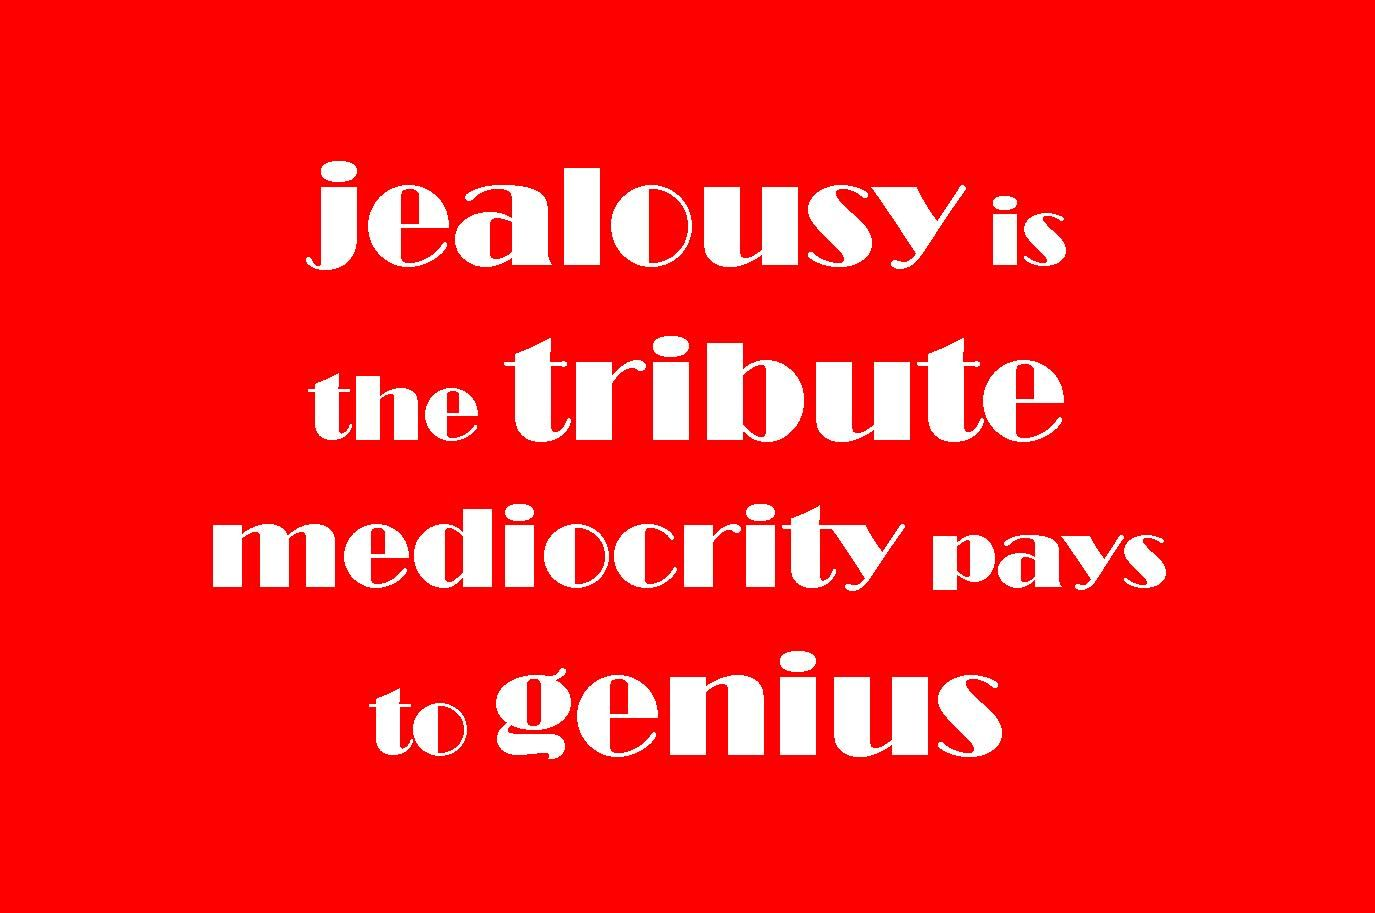 20 Heart Burning Jealousy Quotes